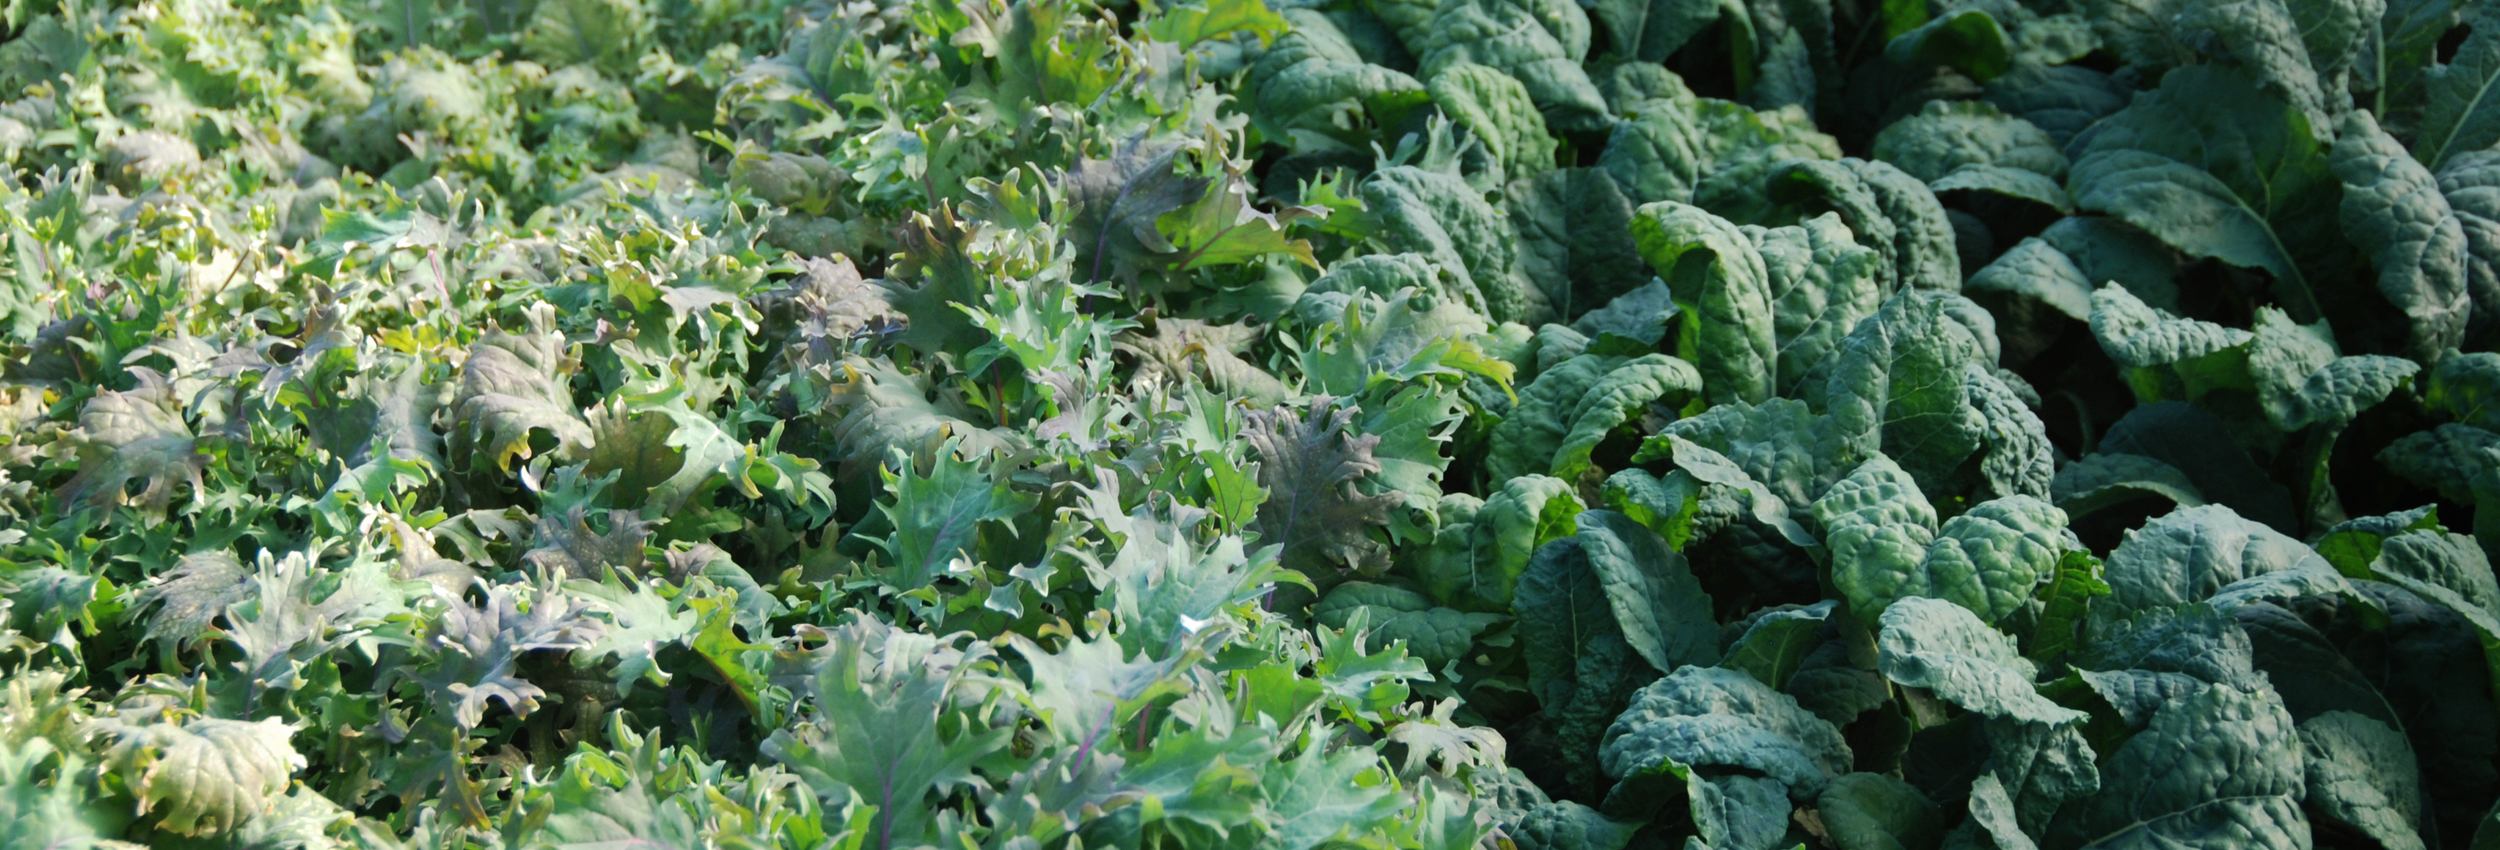 kale cover photo.jpg